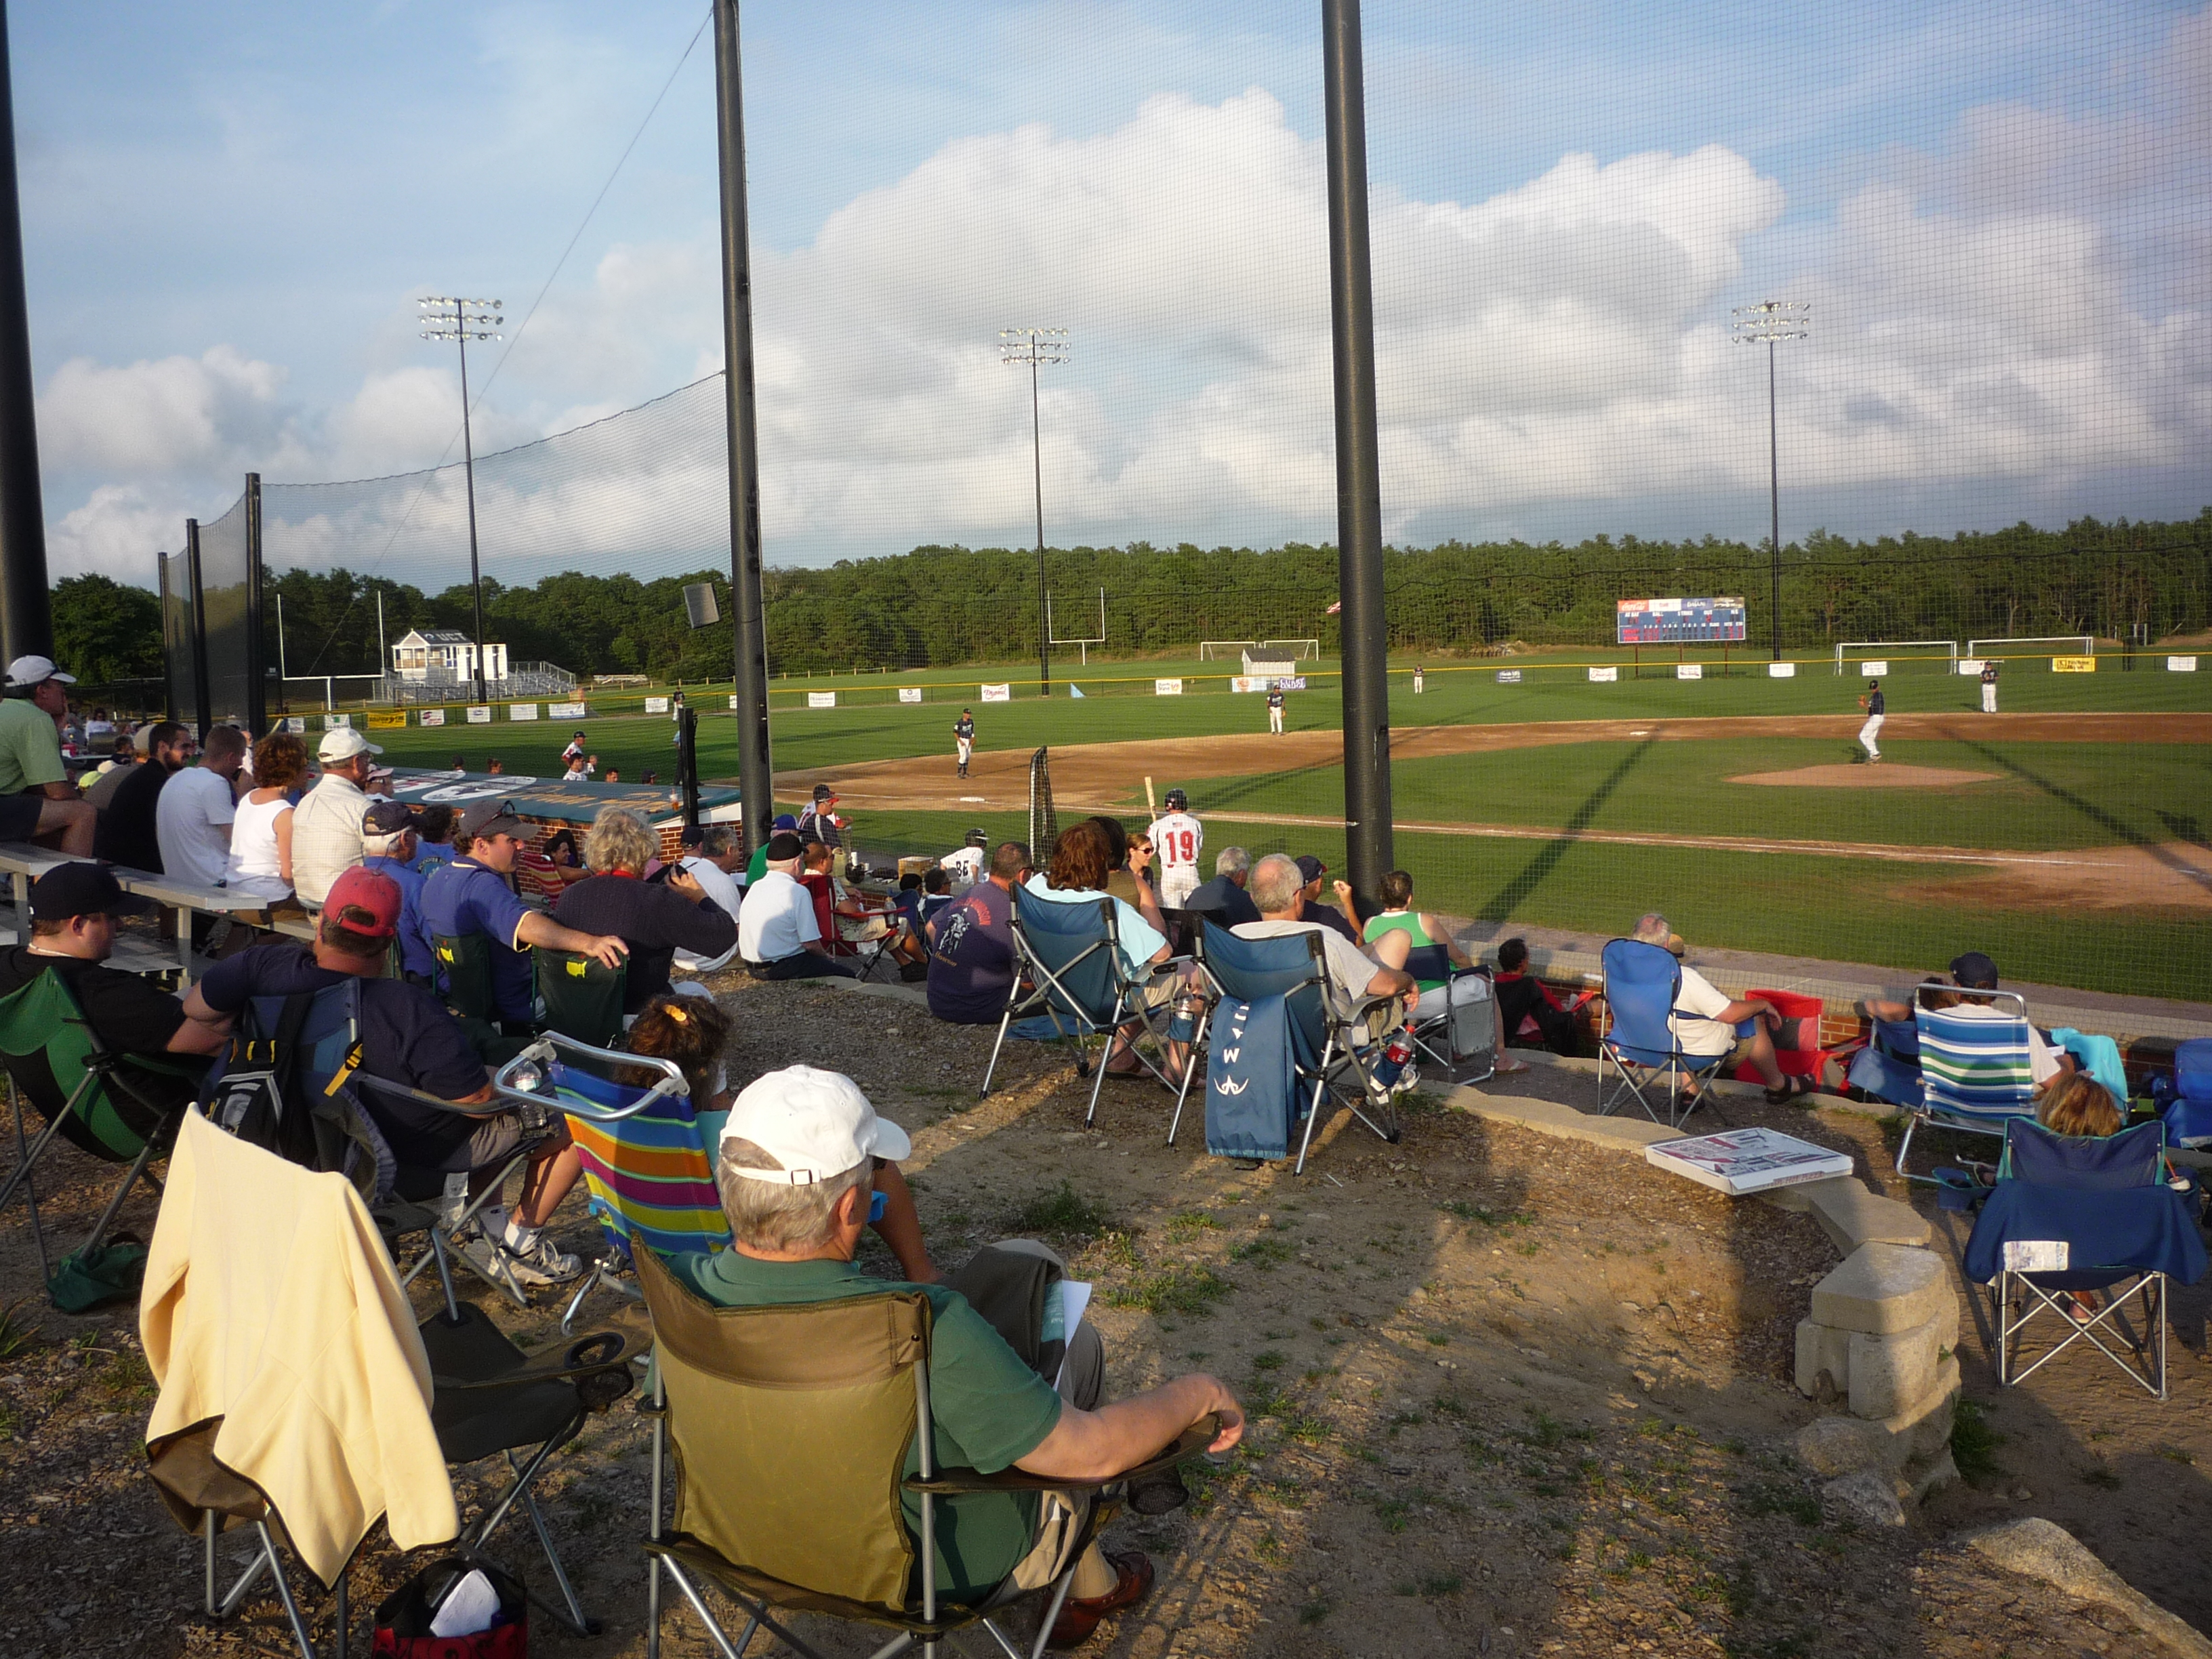 Connecting to America's Favorite Pastime at a Cape Cod Baseball League Game